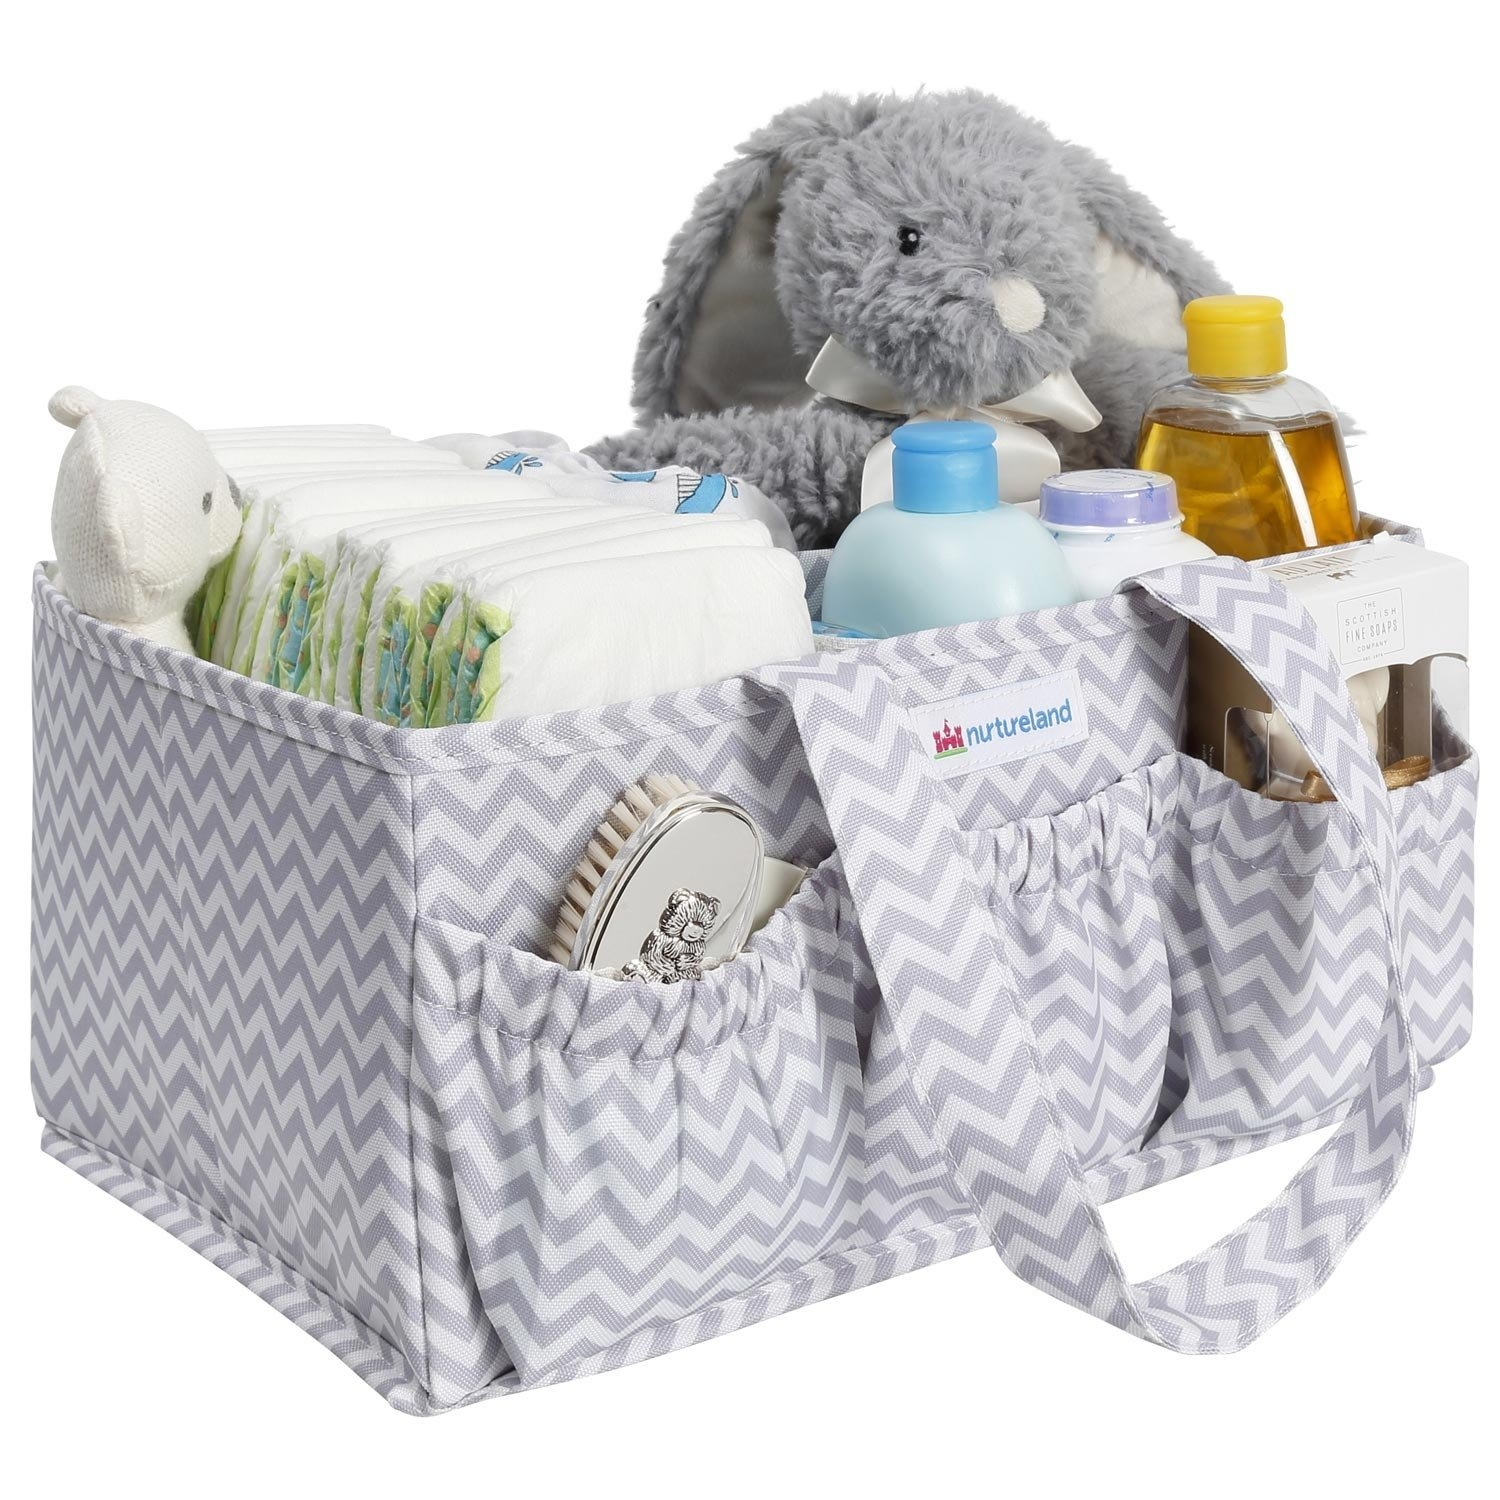 Baby Diaper Stacker Bin Bibs Changing Table Bag Diaper Caddy By Littlest Sweet: Nursery and Car Organizer Toys And Pacifiers Bottles Large Pockets And Compartments Also Used to Hold Snacks